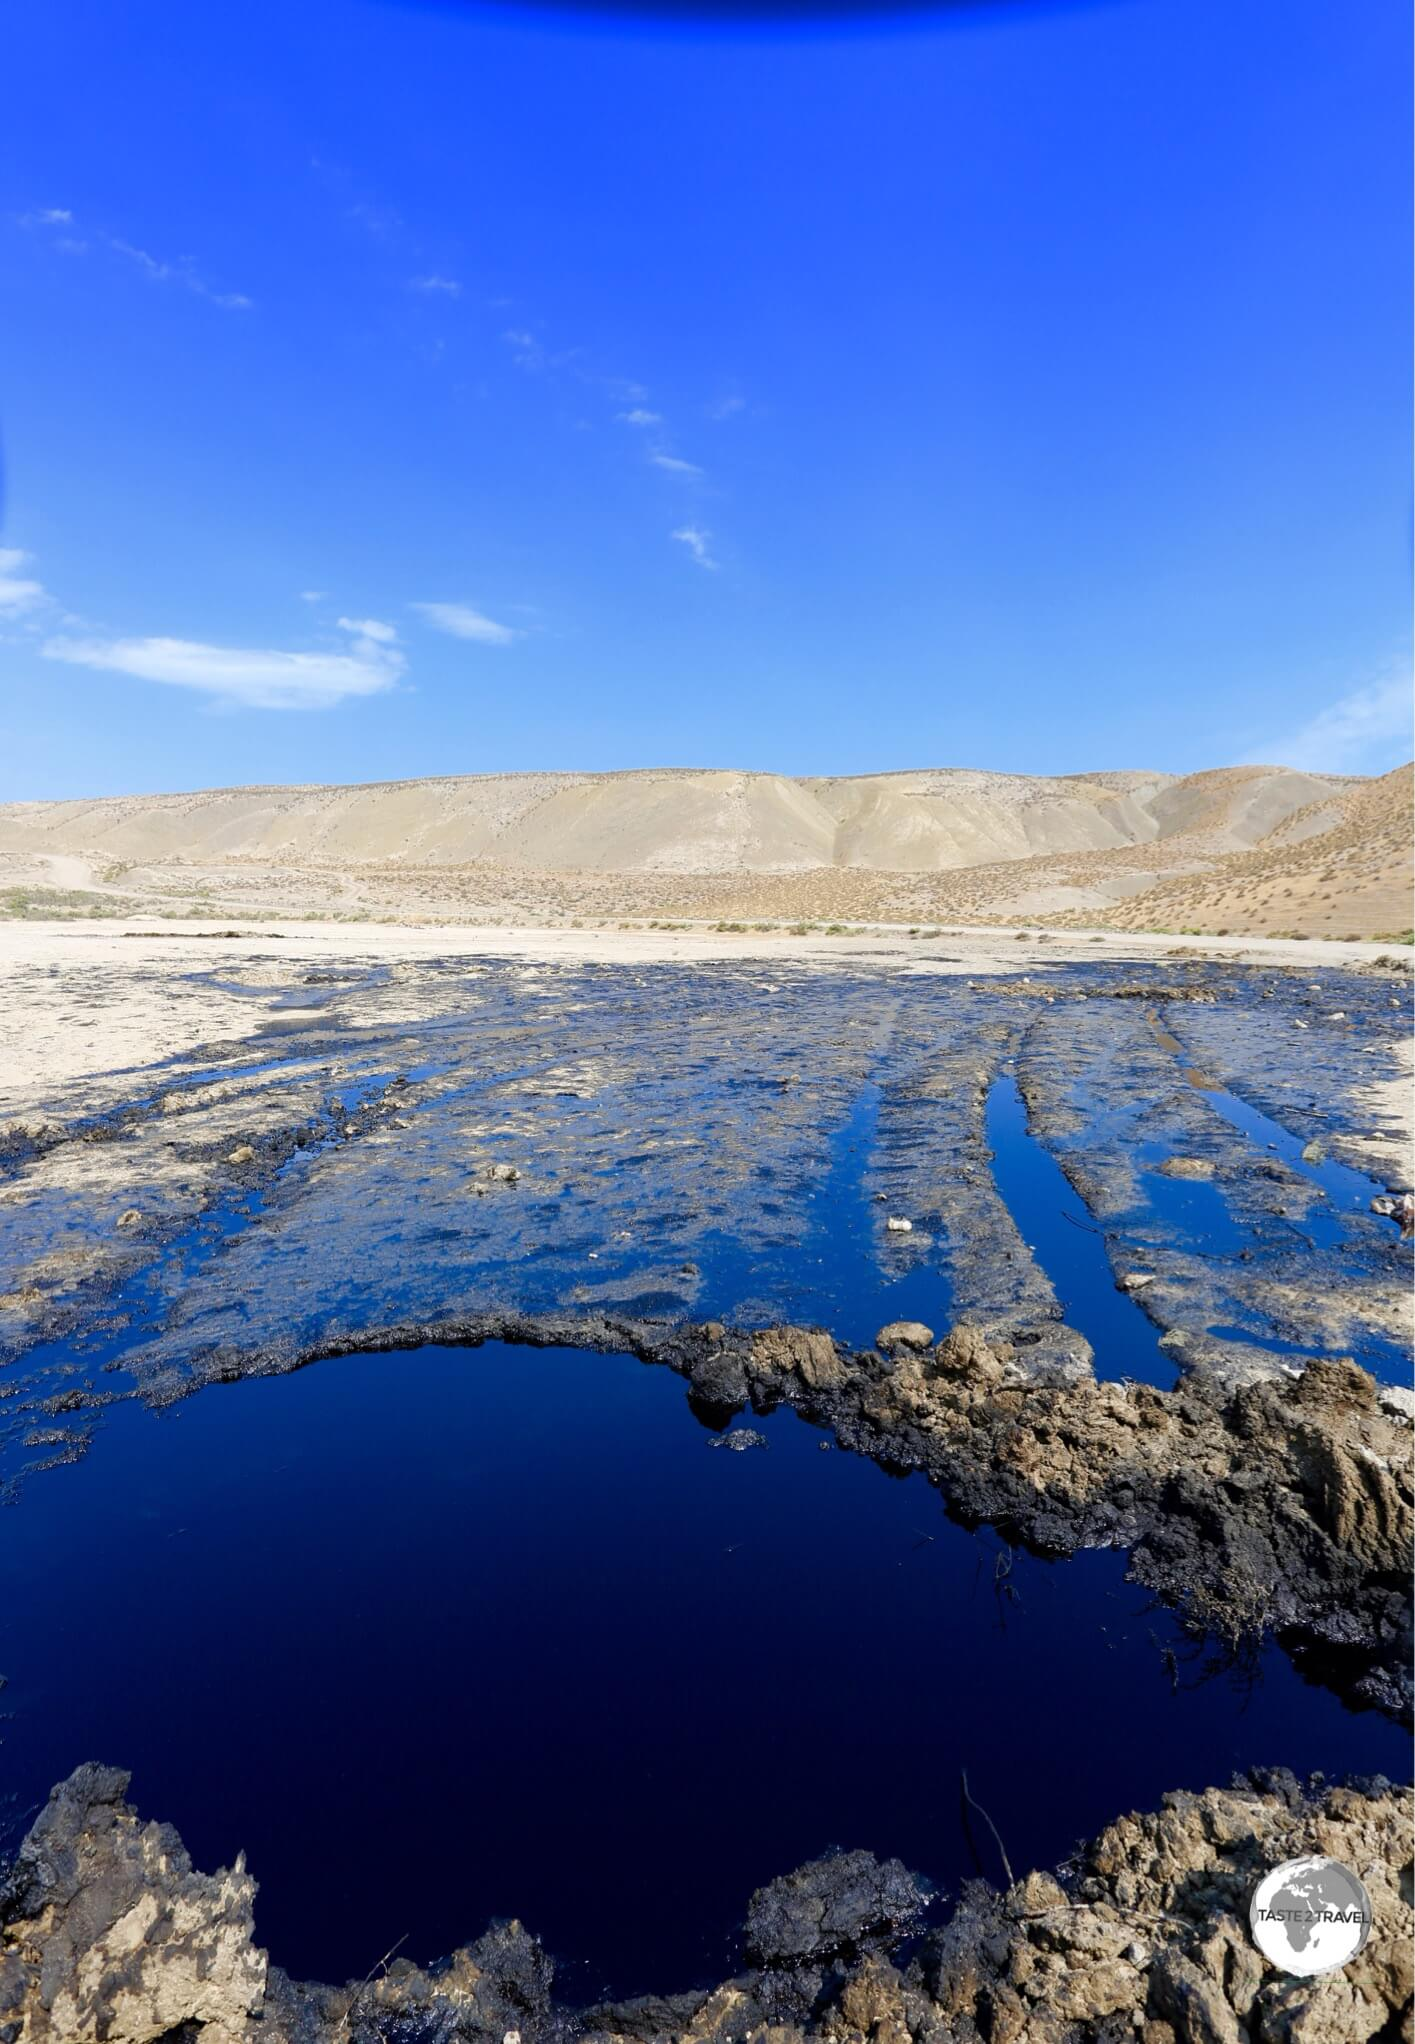 An oil seep near to the mud volcanoes.